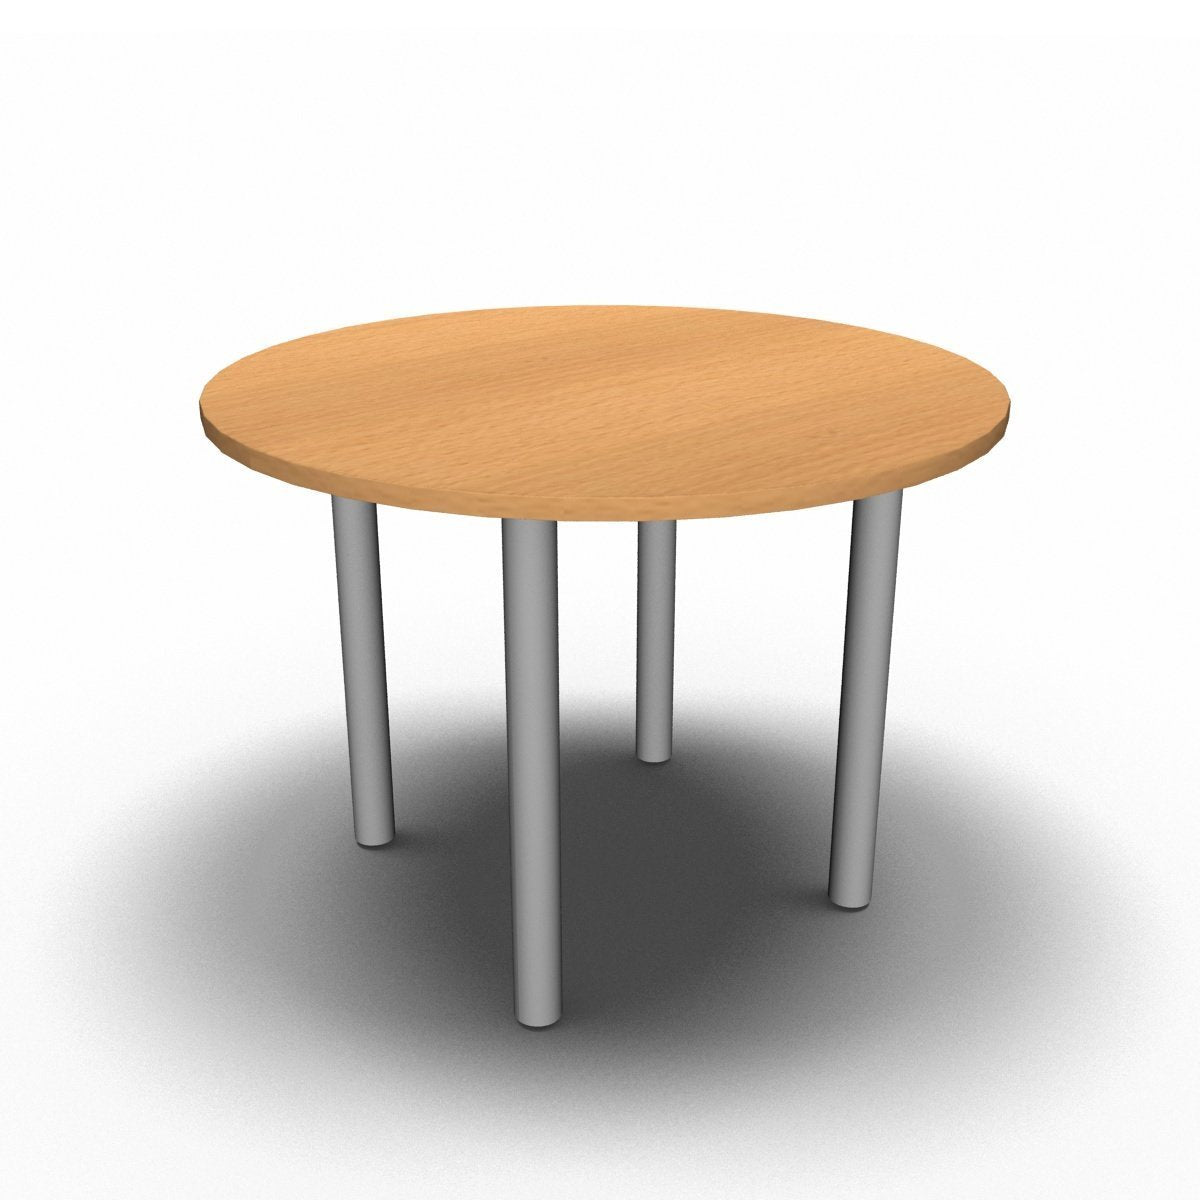 Table 1000mm Diameter - 60mm Legs / Beech Synergy Round Meeting Table